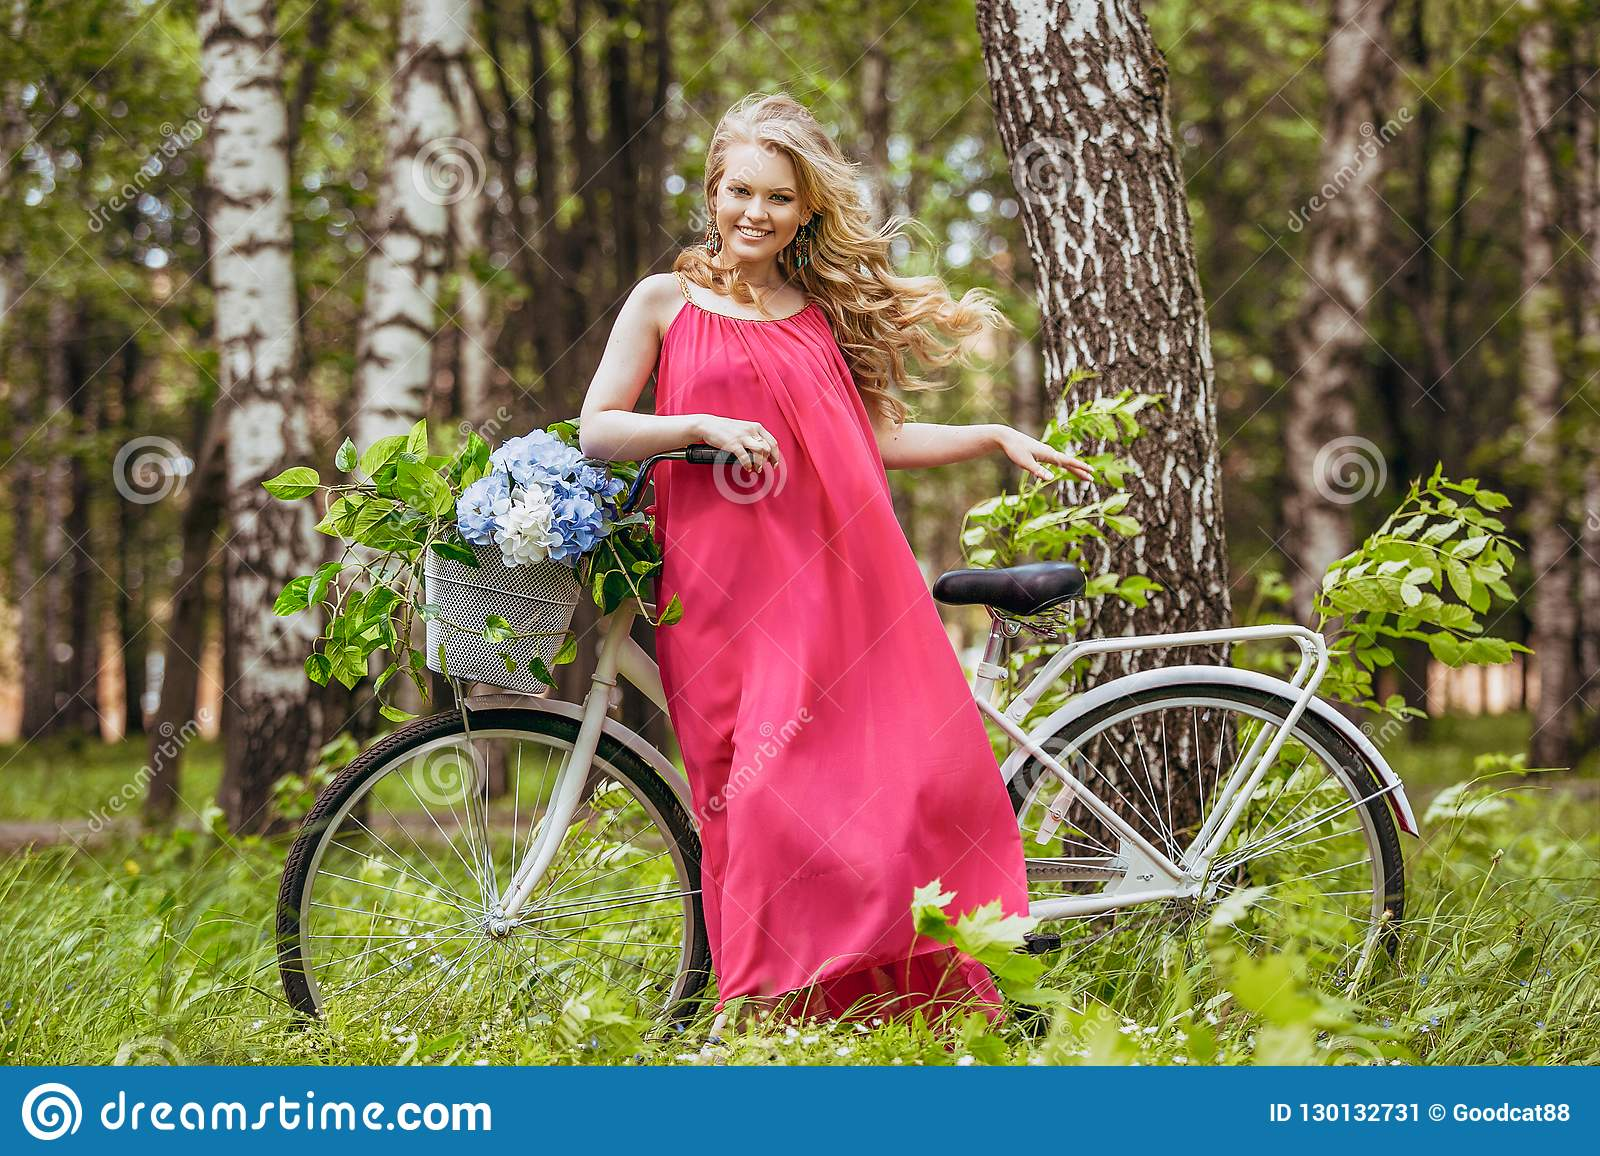 Beautiful young girl in a summer dress at sunset. Fashion photo in the forest. Model on a bicycle with flower bouquet, in a pink l